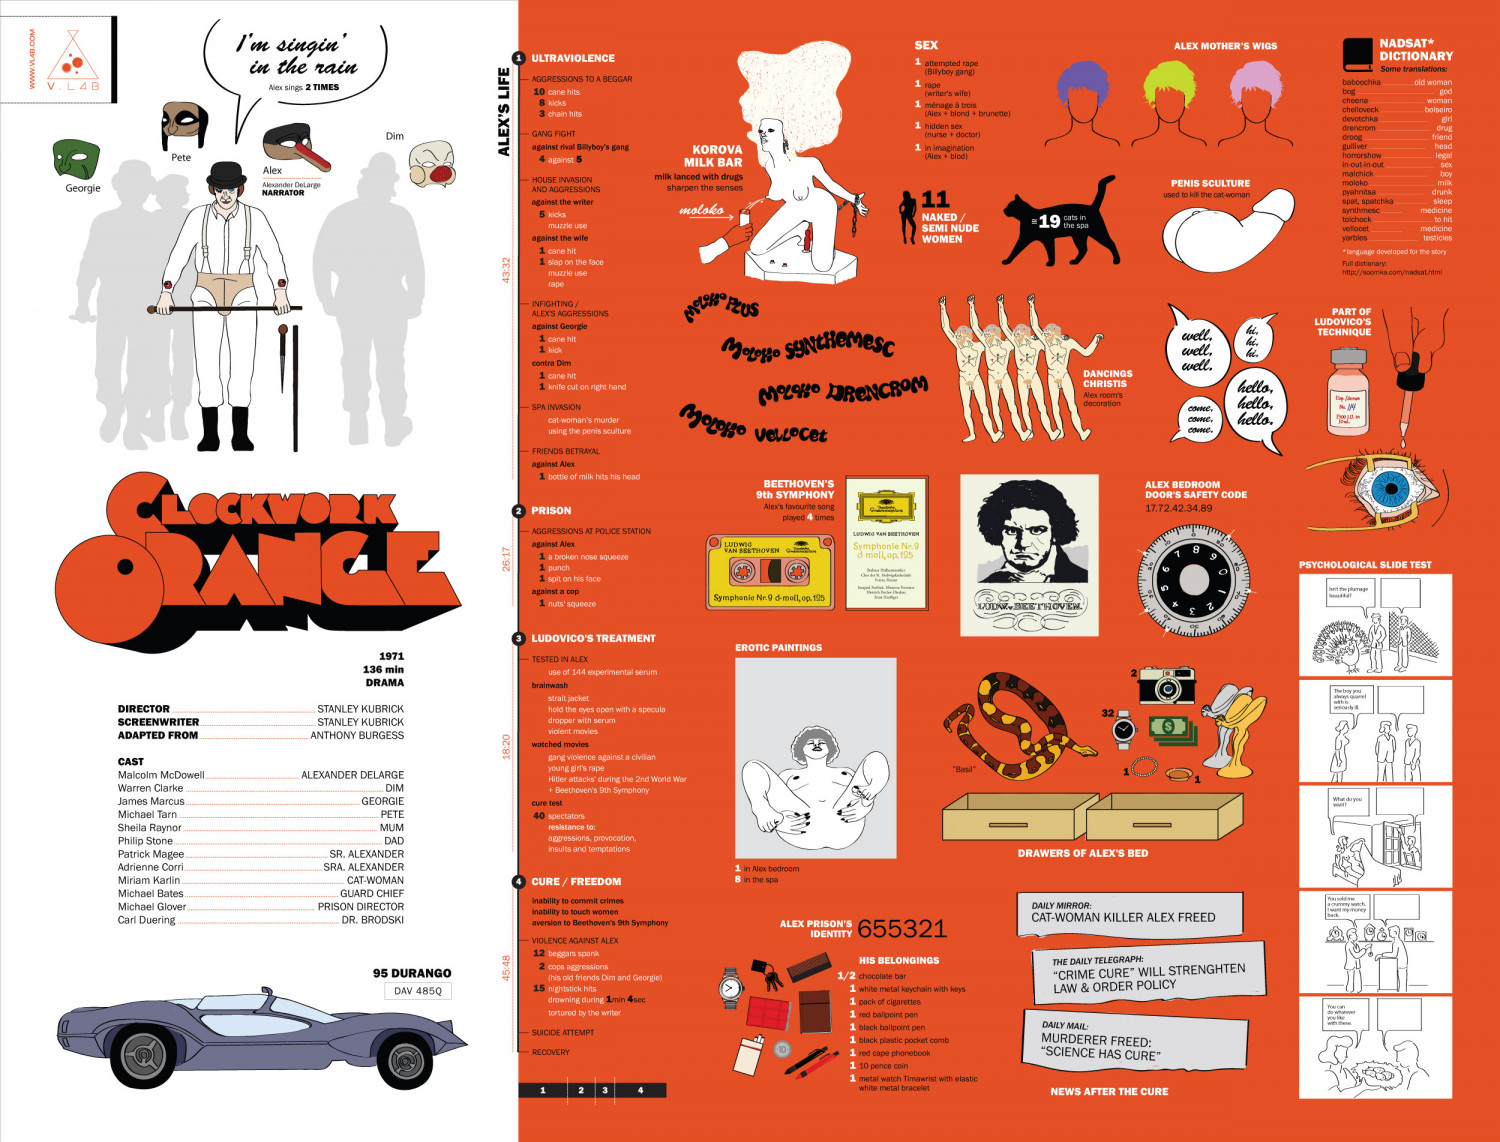 Clockwork Orange Infographic